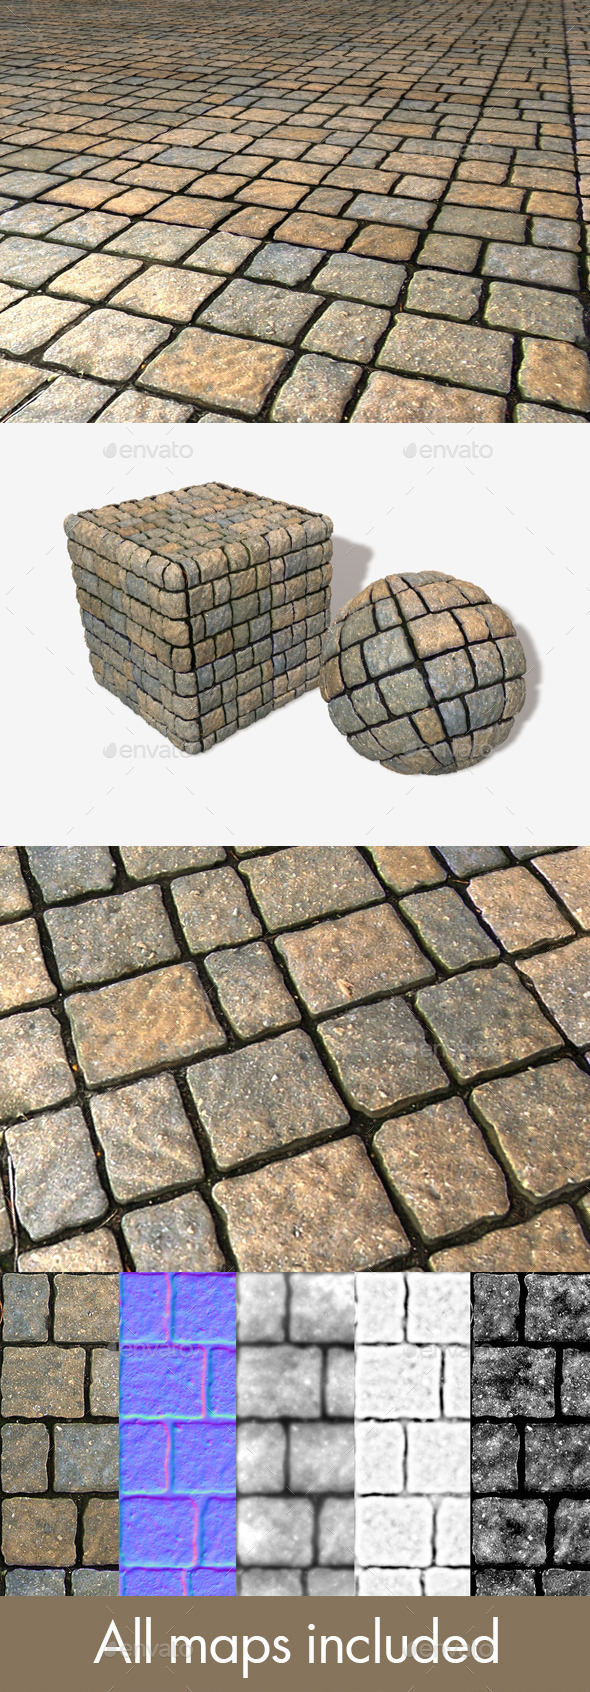 Floor Bricks Seamless Texture - 3DOcean Item for Sale